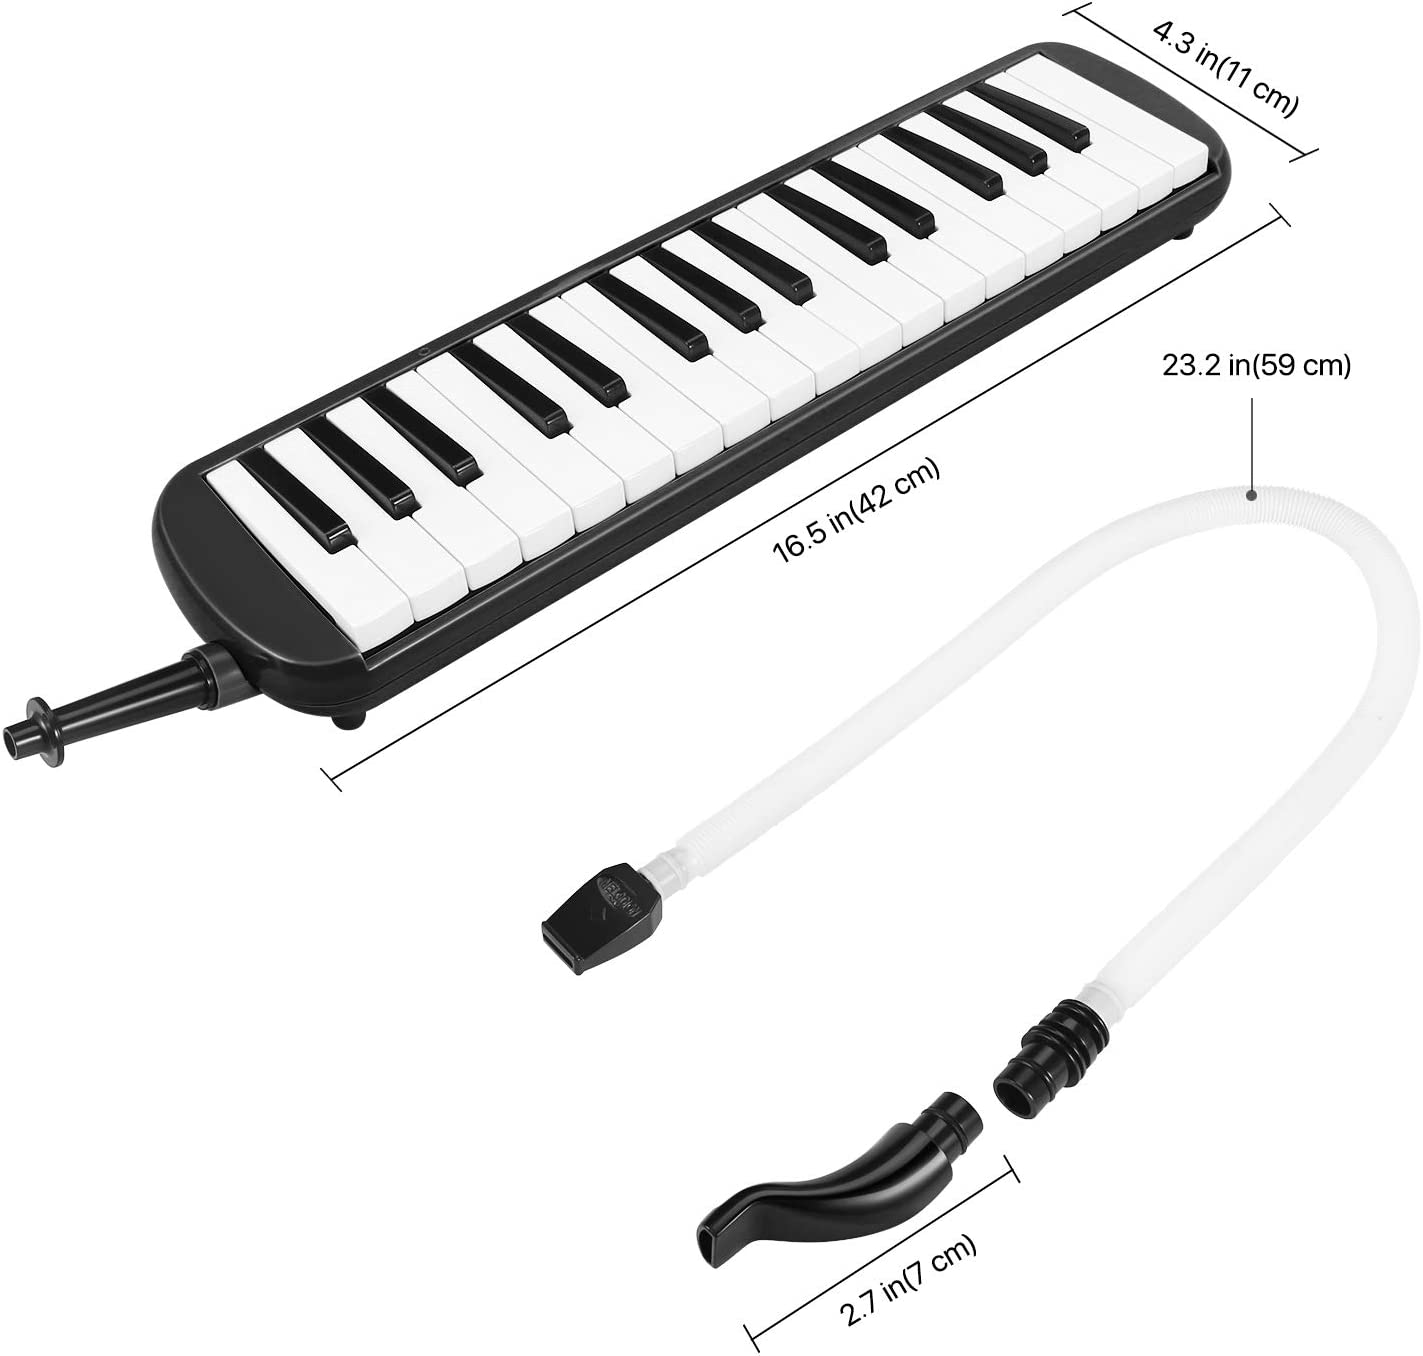 2 Long Tube Mouthpiece Flexzion Melodica 32 Key Black Pianica Blow Piano Keyboard Harmonica Wind Instrument//w Portable Carrying Bag 2 Trumpet Mouthpiece Kit for Beginners Kids Fun Music Gift